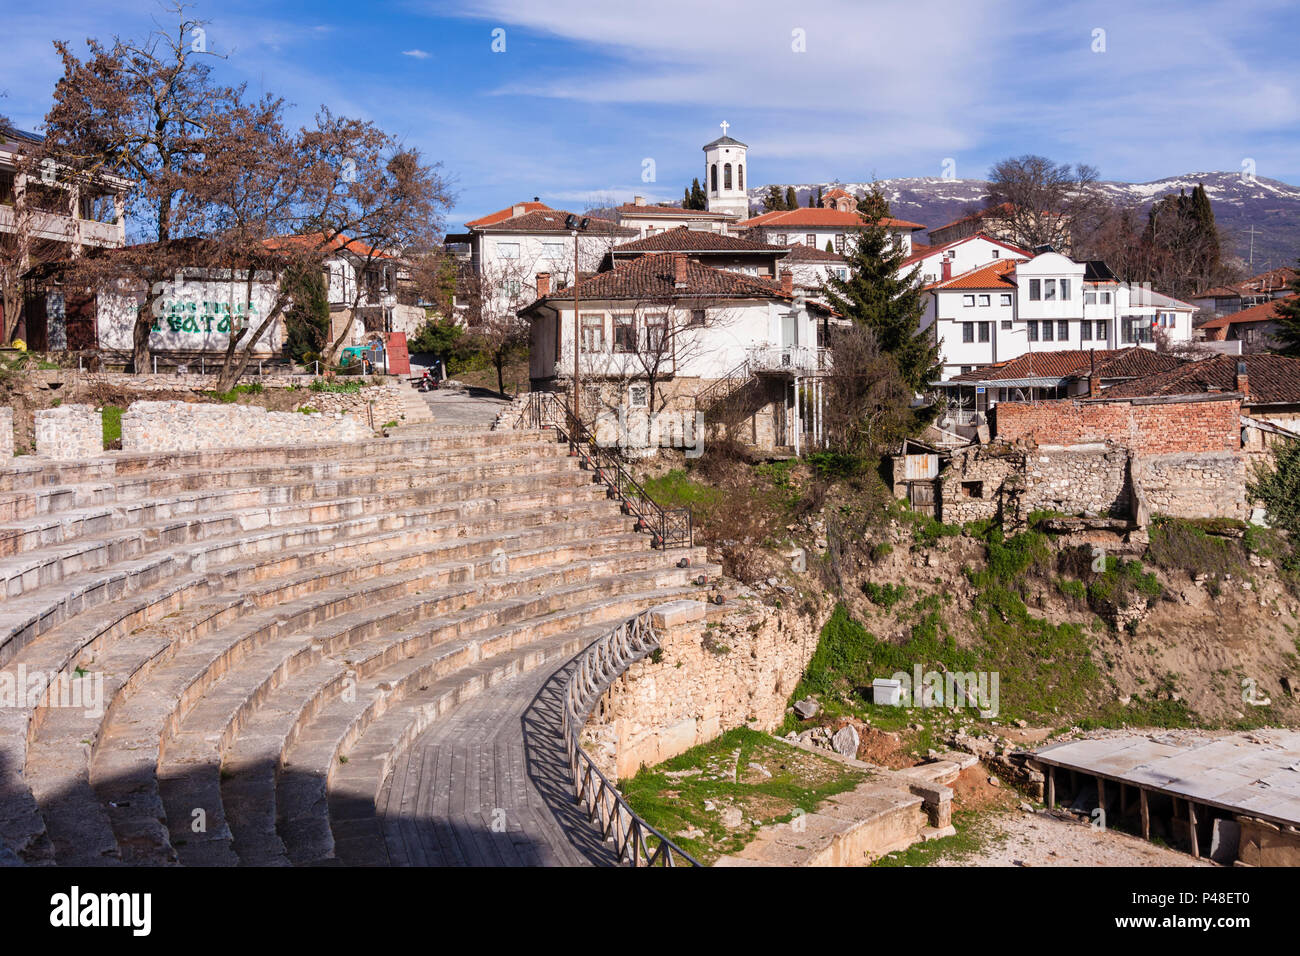 Ohrid, Republic of Macedonia : Ancient Theatre of Ohrid built in 200 BC in the Unesco listed old town of Ohrid. - Stock Image